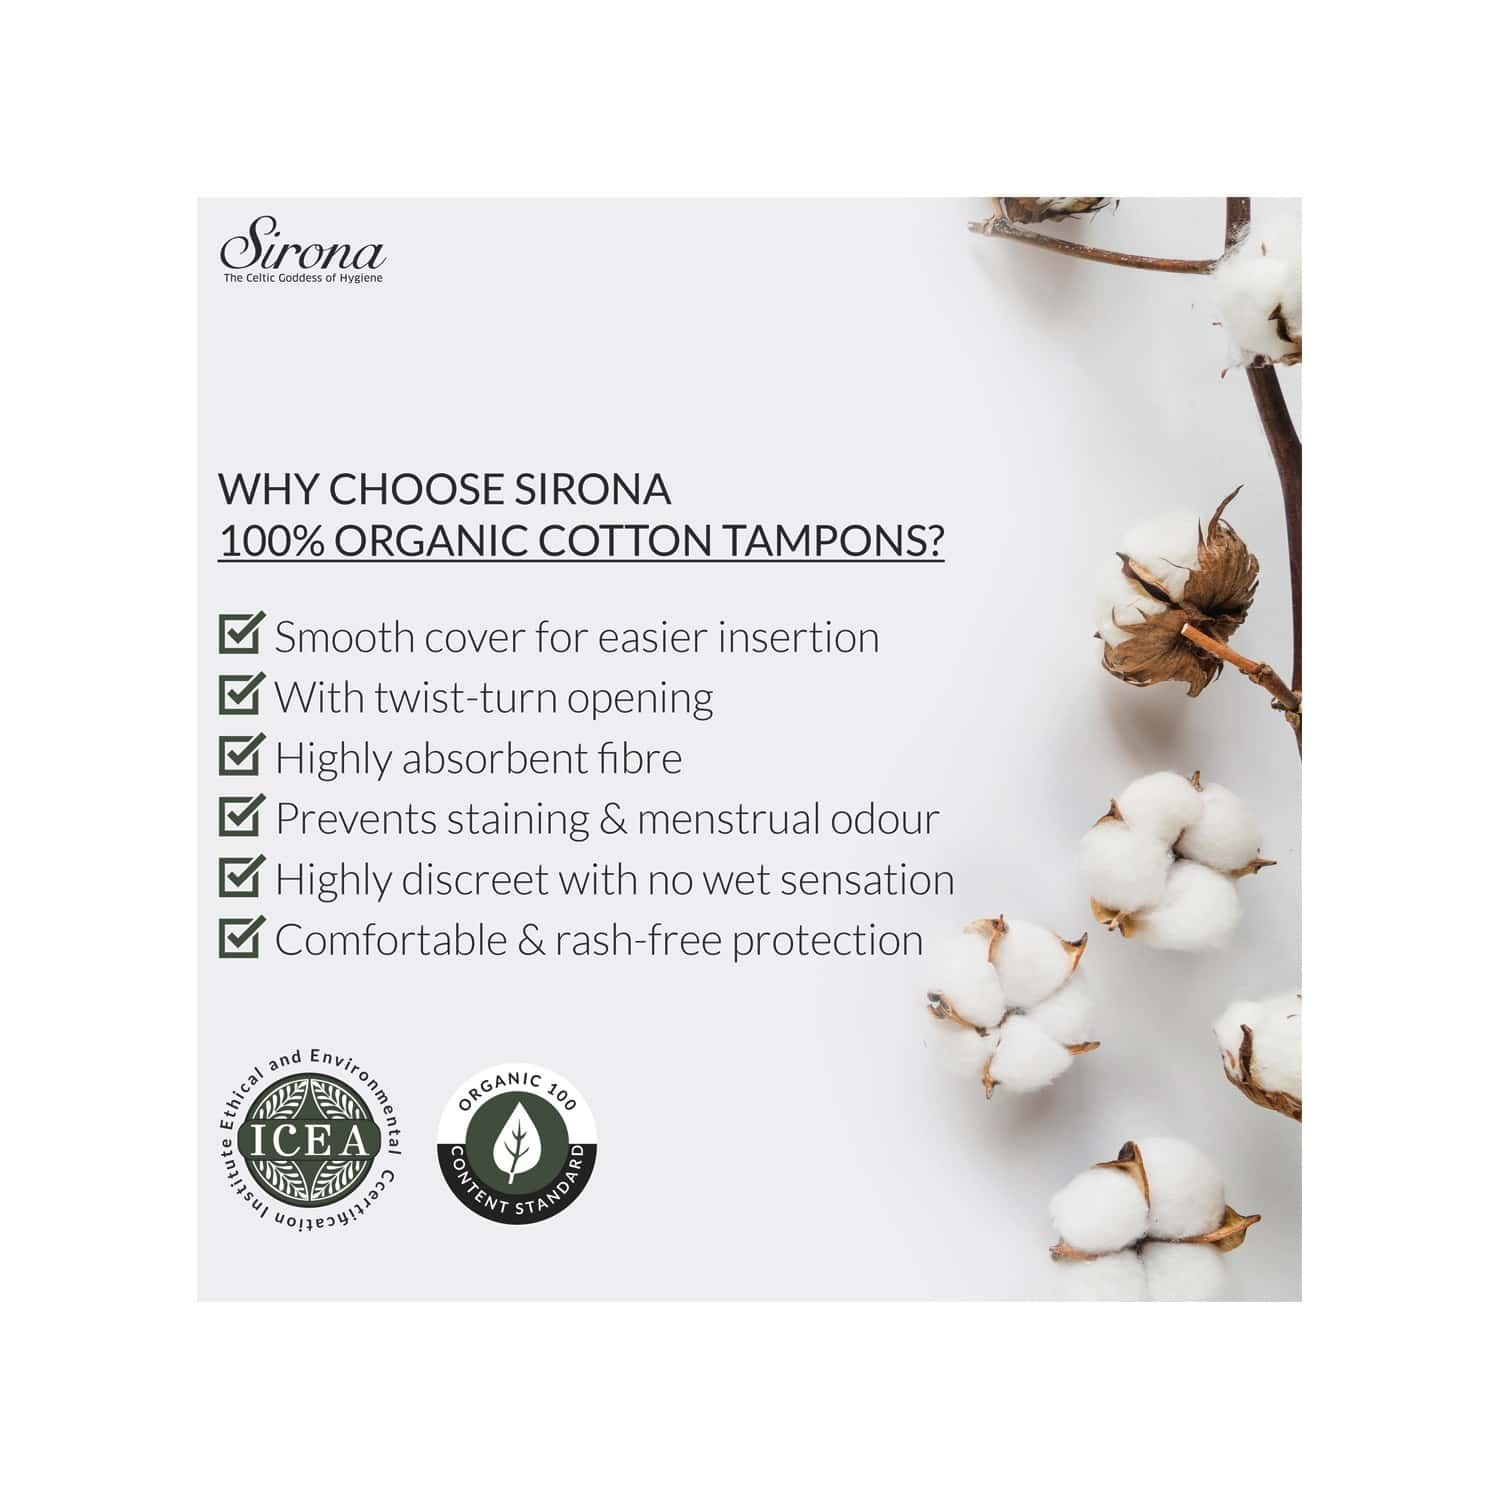 Sirona Heavy Flow Organic Tampons Made With 100% Organic Cotton, Non-applicator Tampons - 18 Pcs